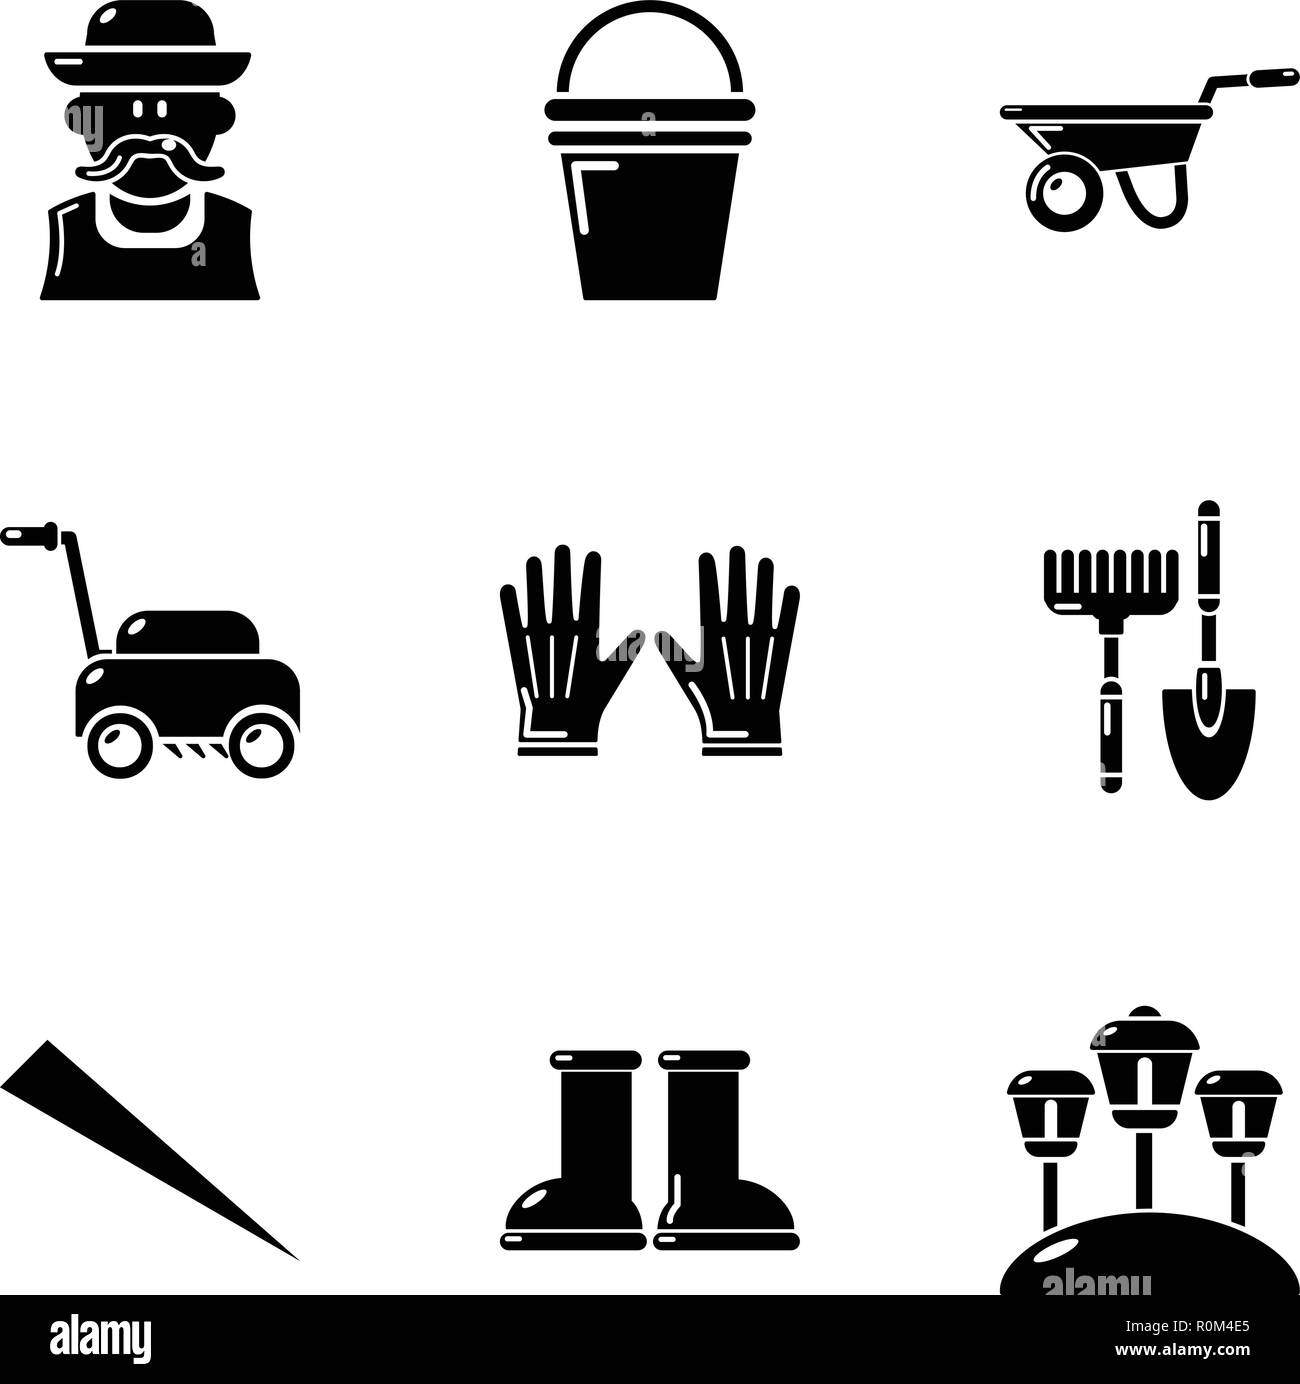 Lawn icons set, simple style - Stock Image